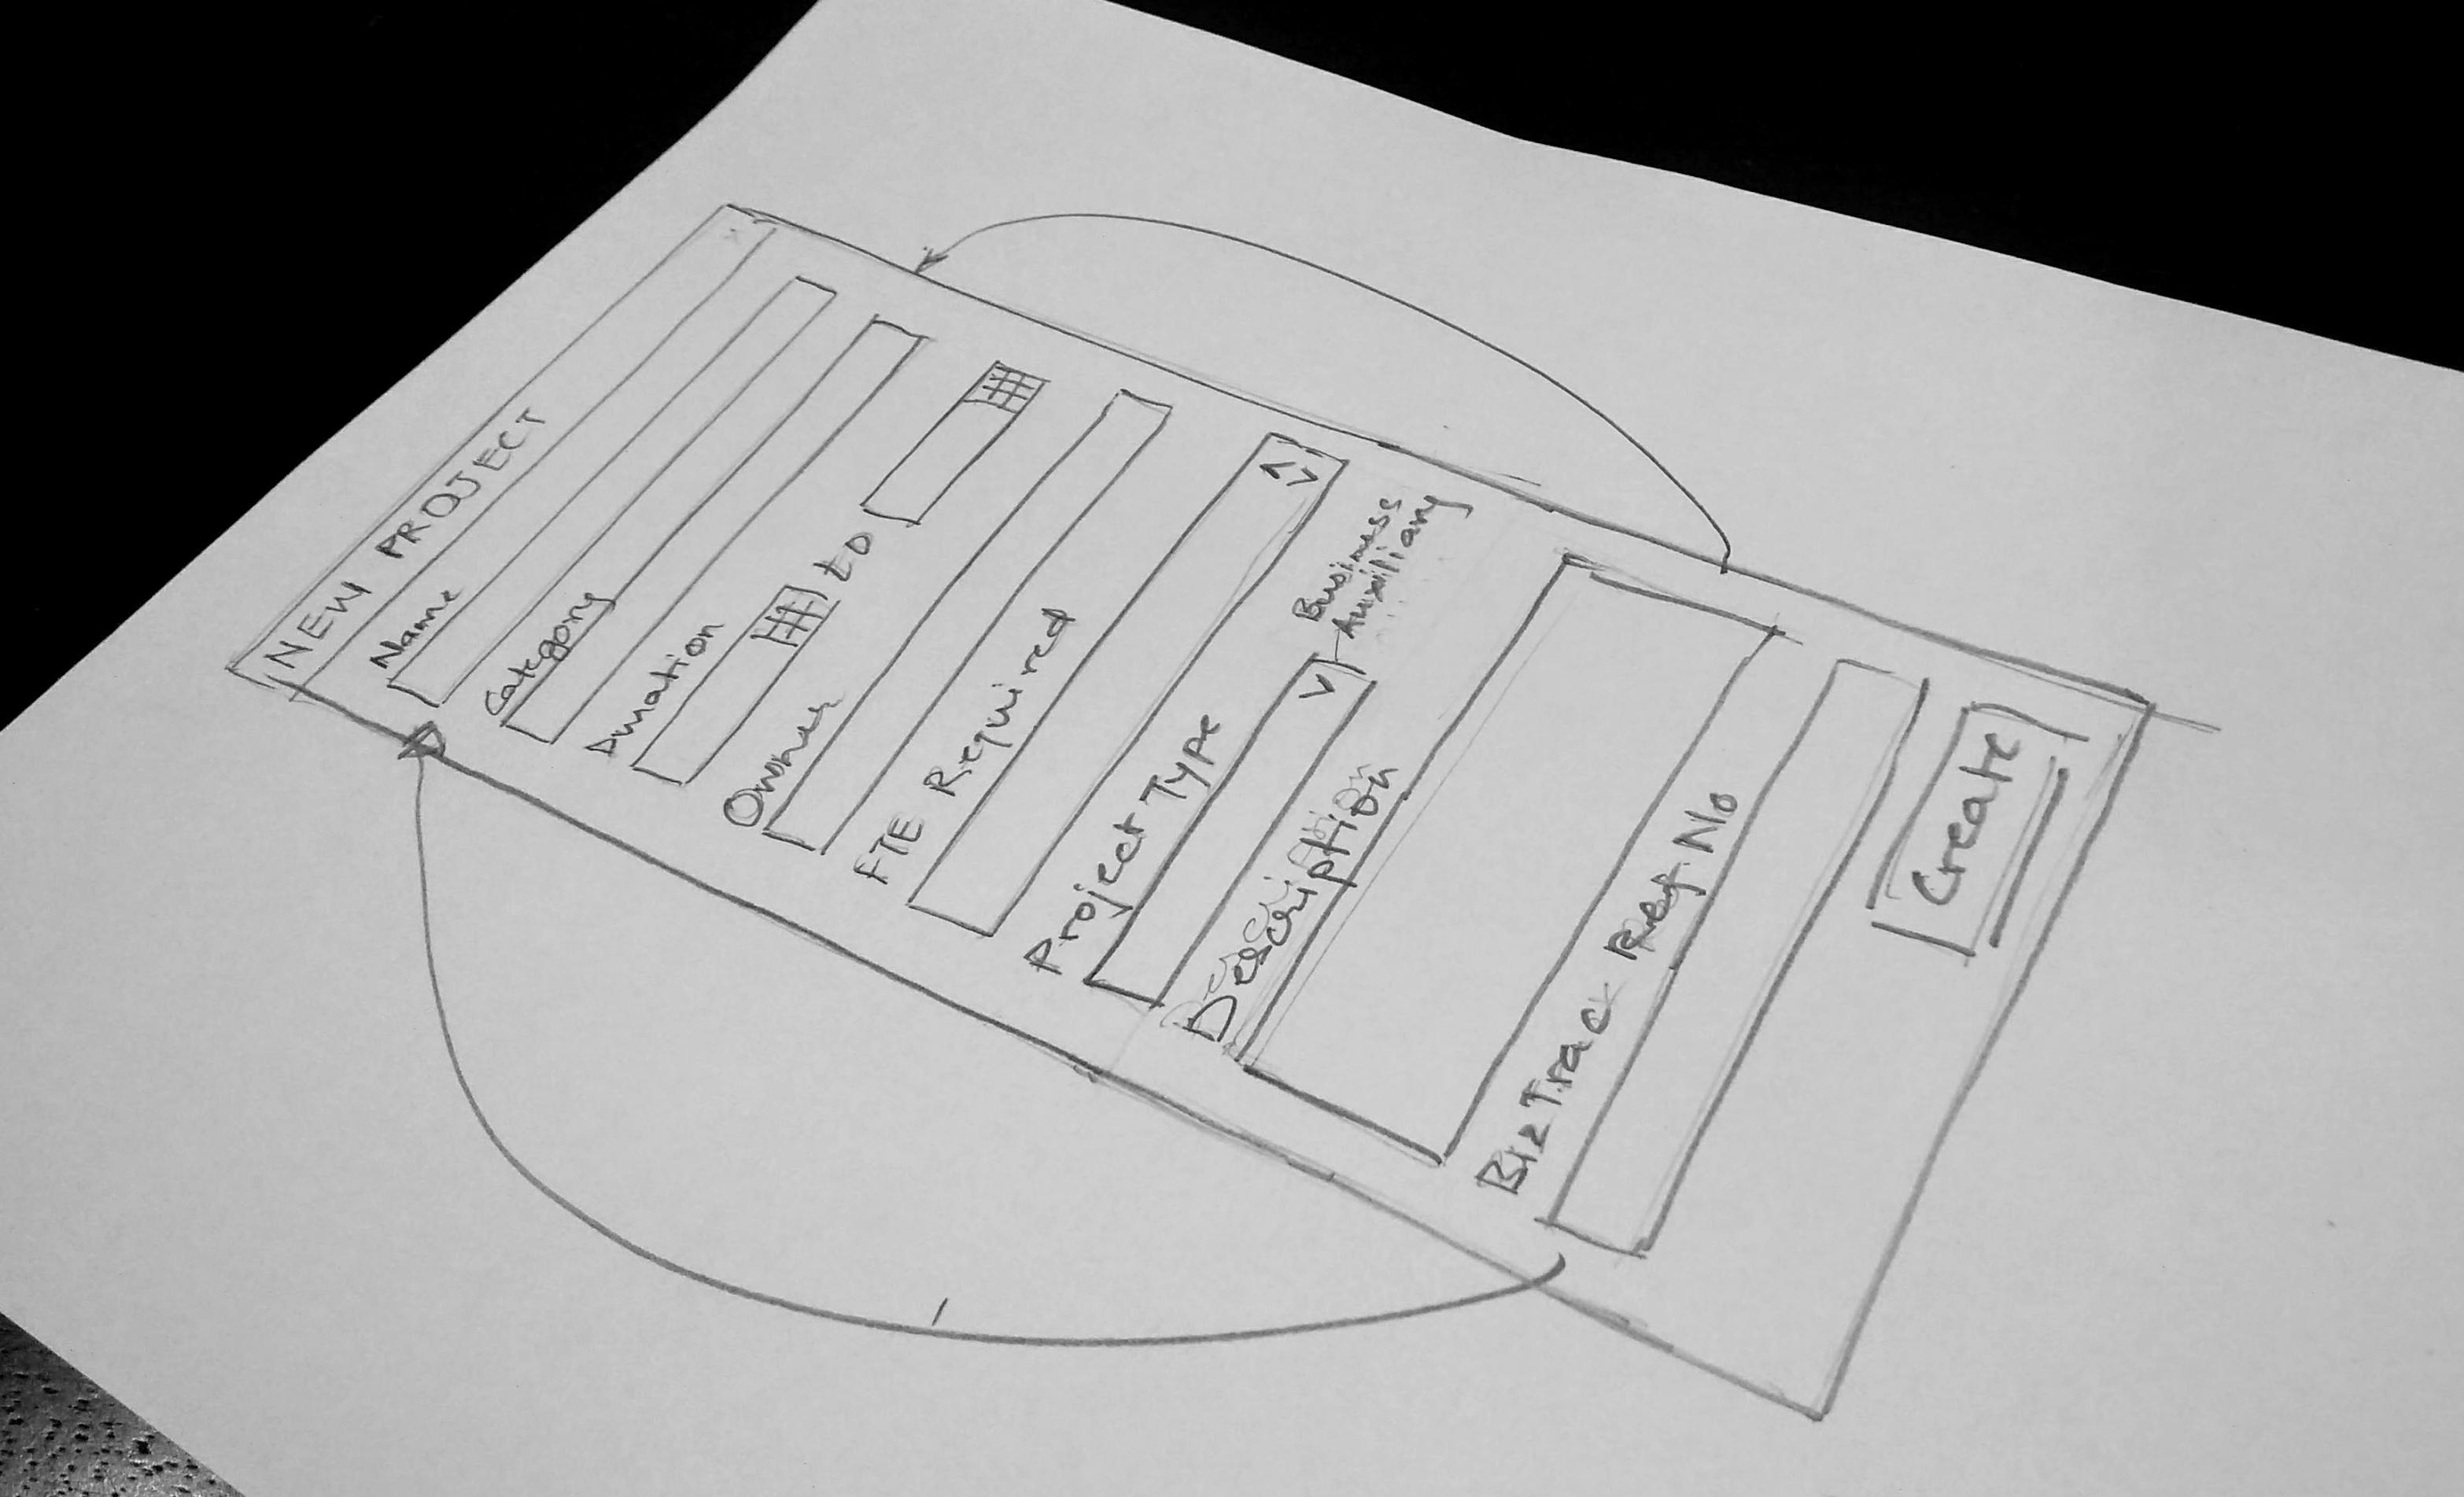 """A paper mockup for a """"New Project"""" form"""